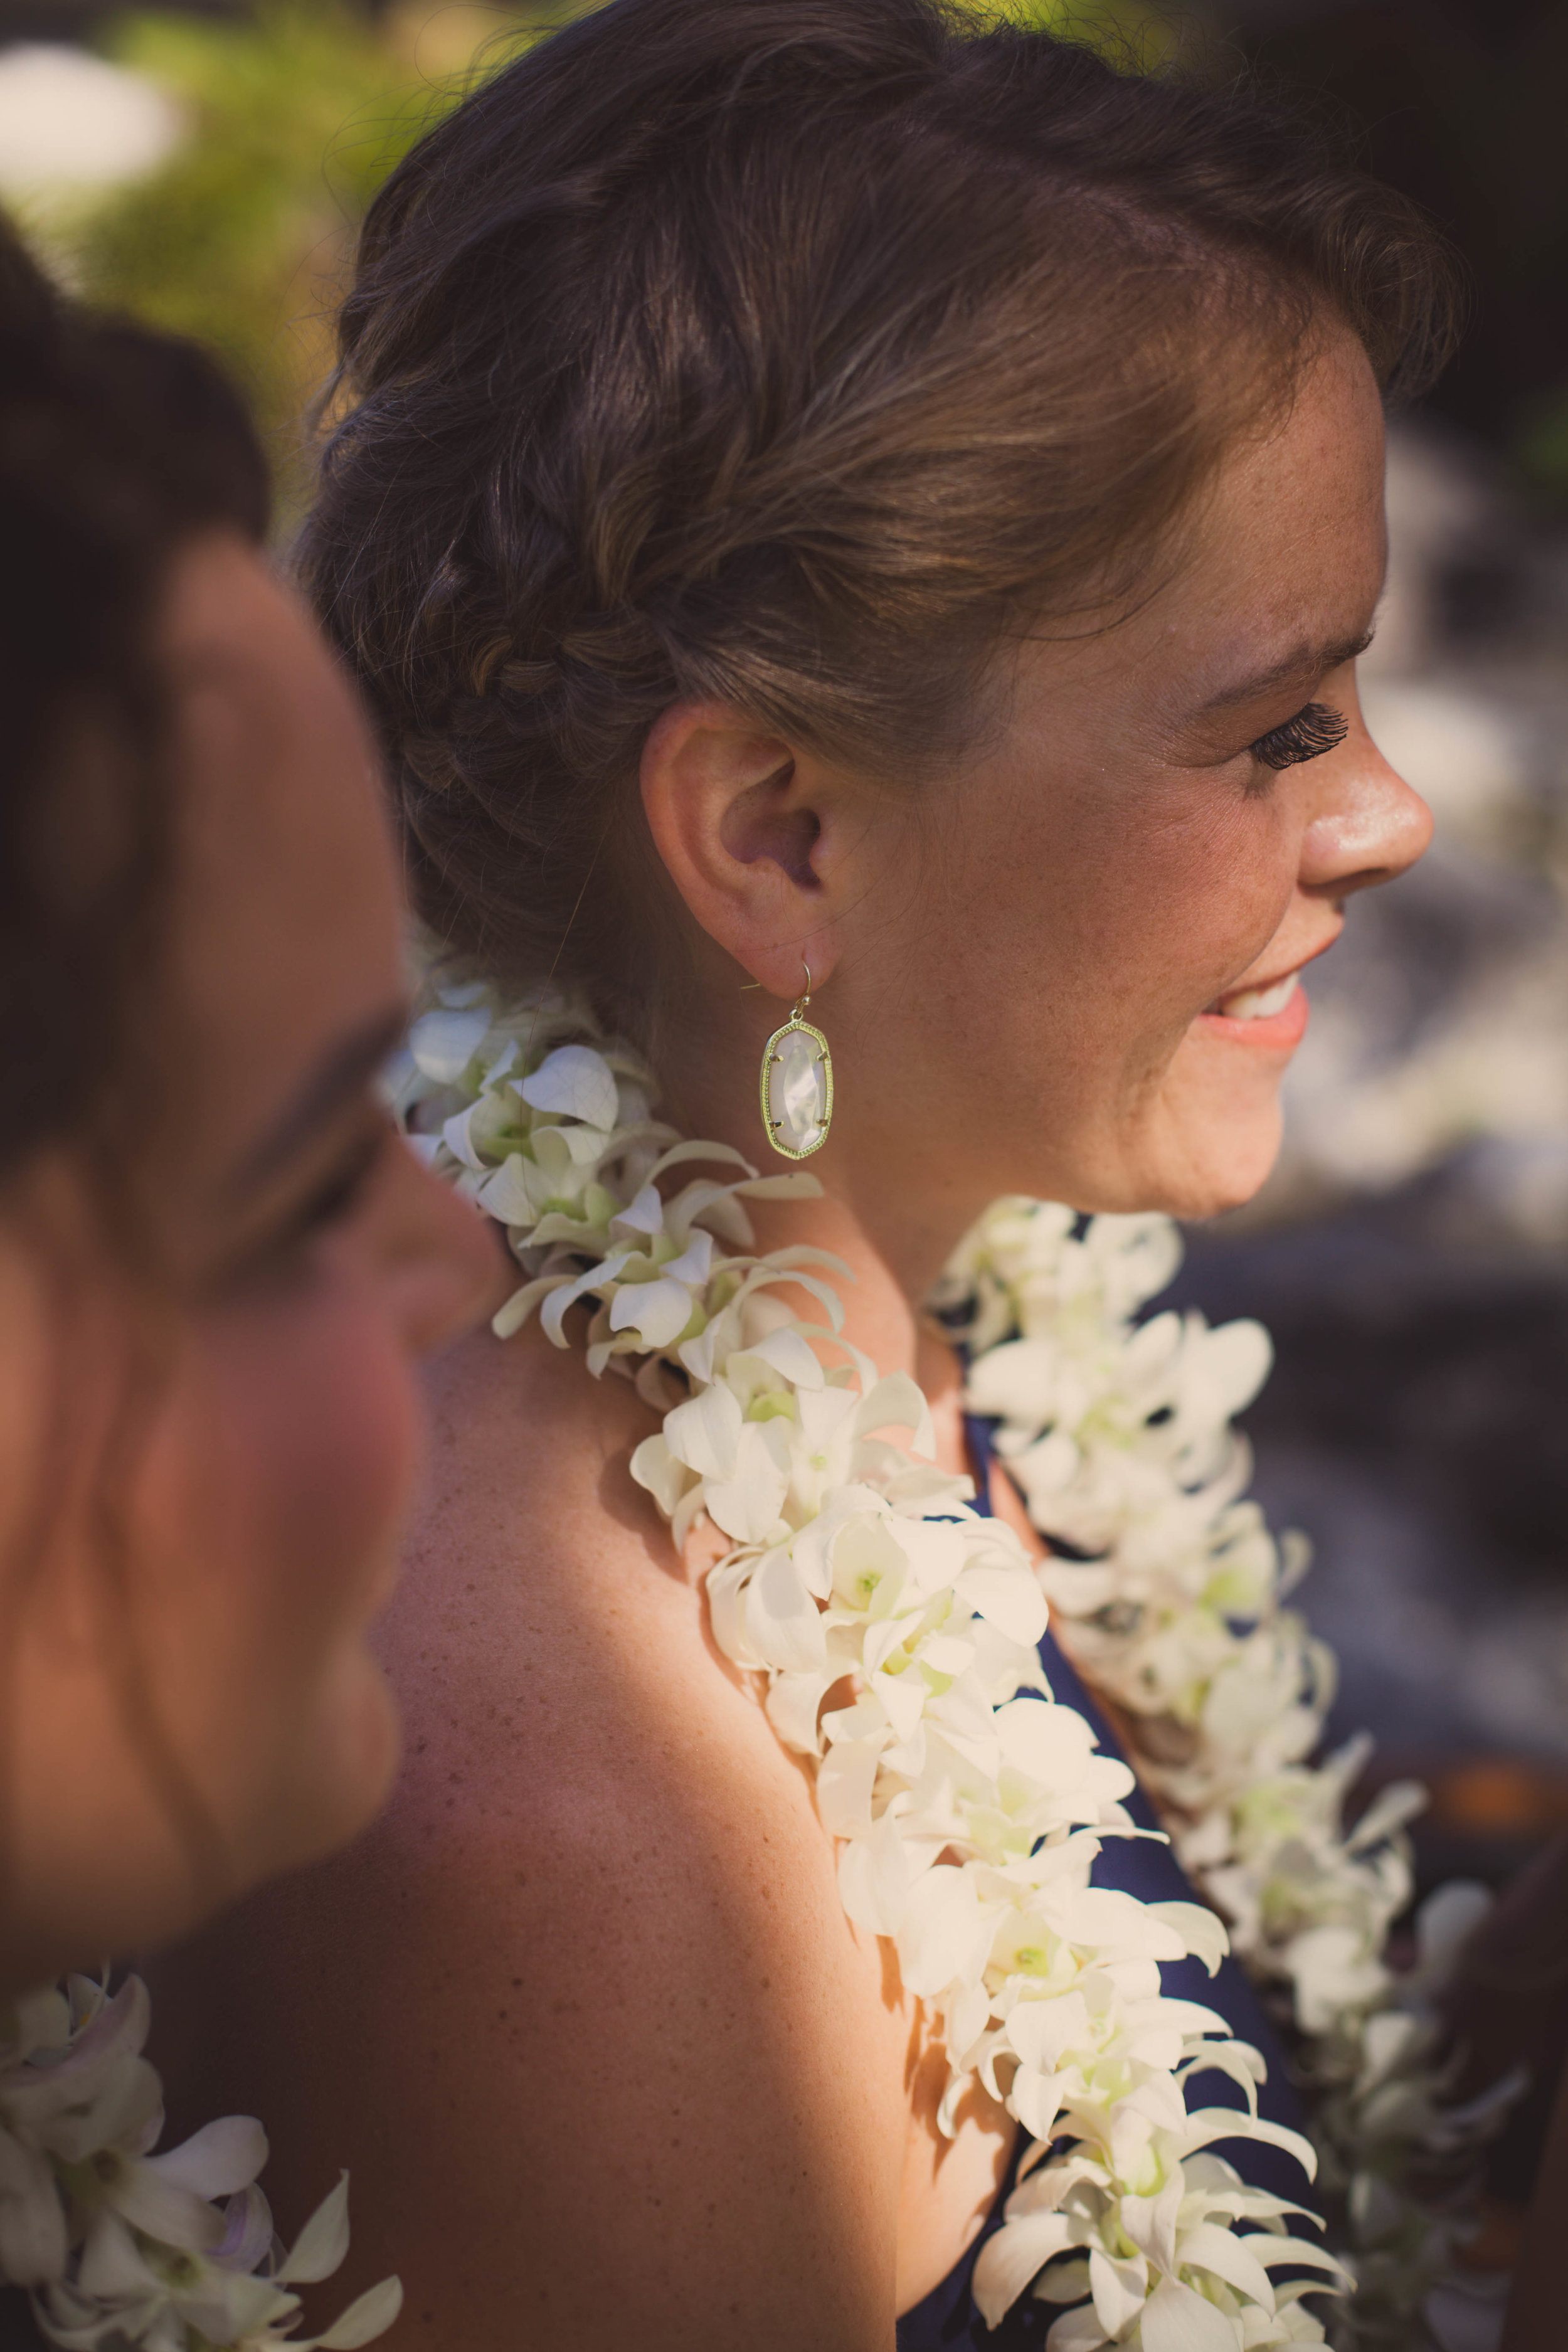 big island hawaii fairmont orchid beach wedding © kelilina photography 20170812163237-1.jpg